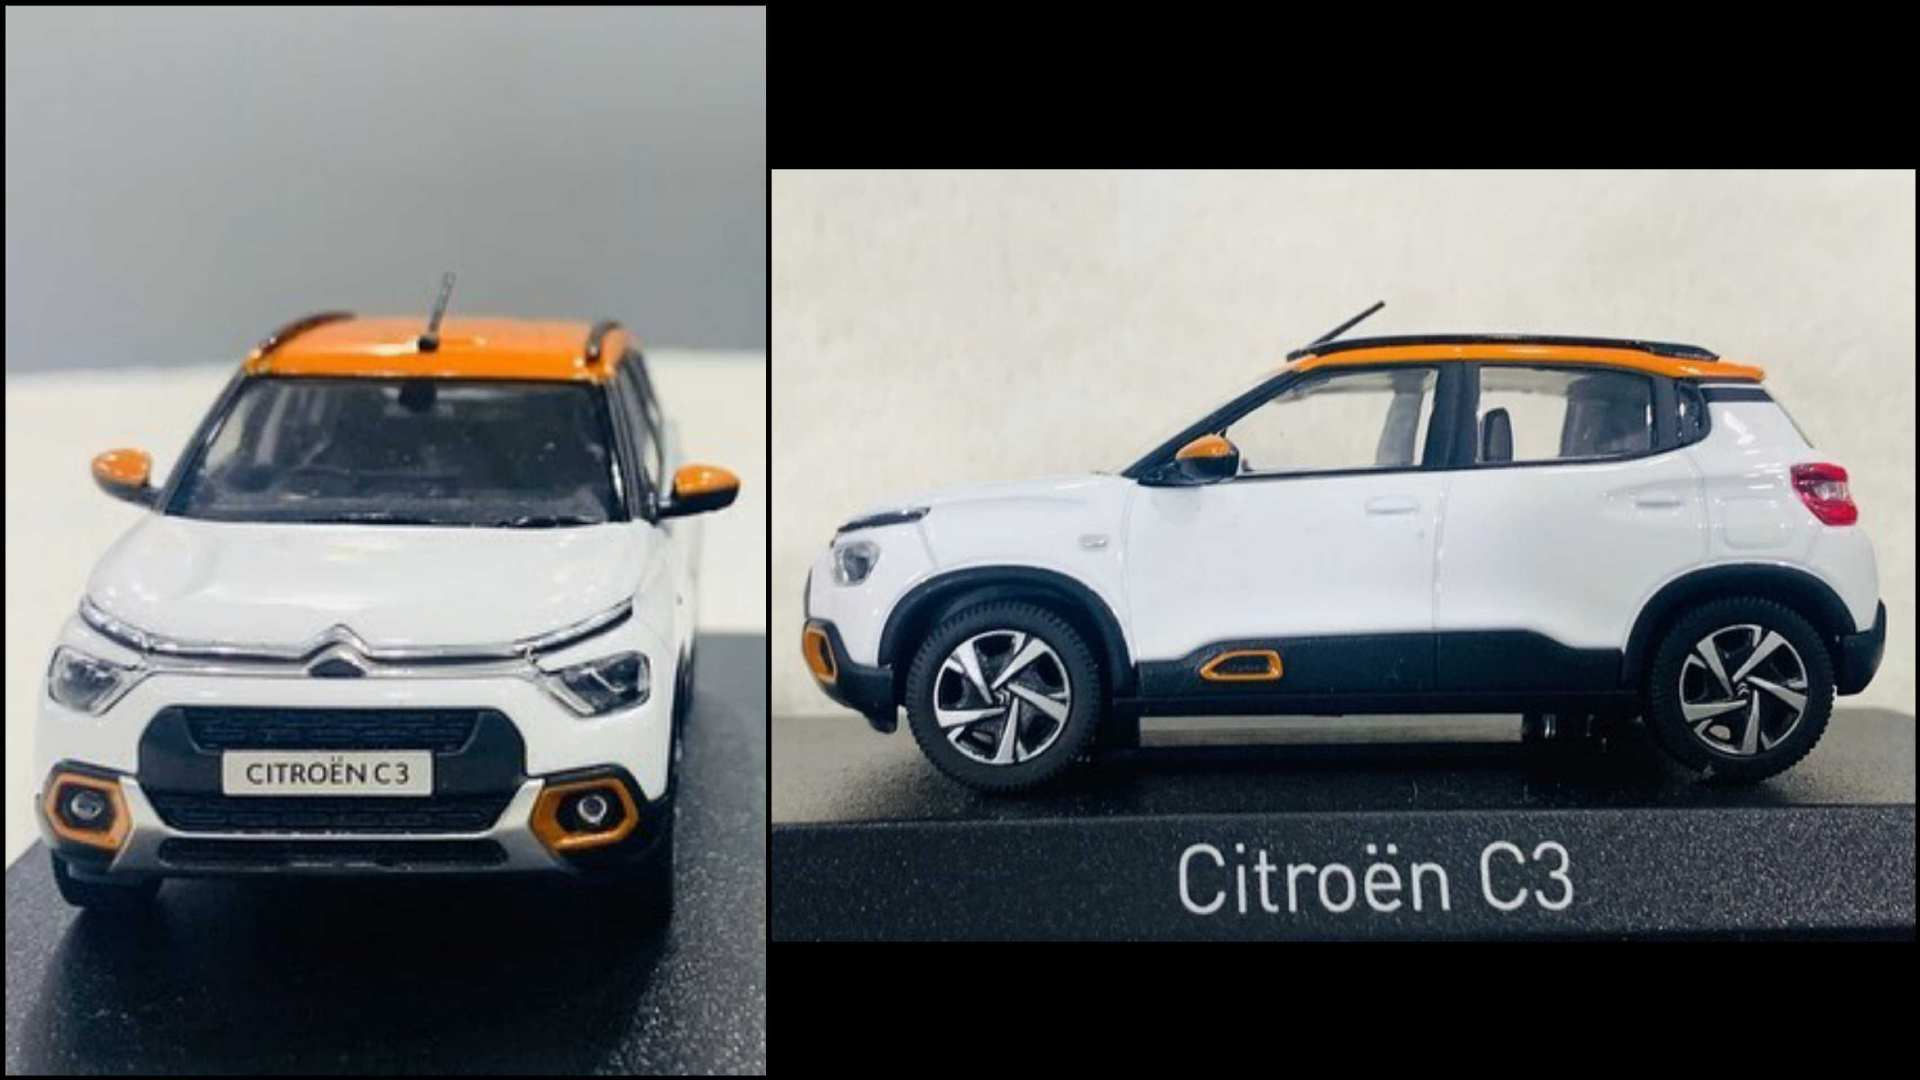 The production-ready Citroen C3 SUV for India is expected to debut later in 2021. Image: pine_0101